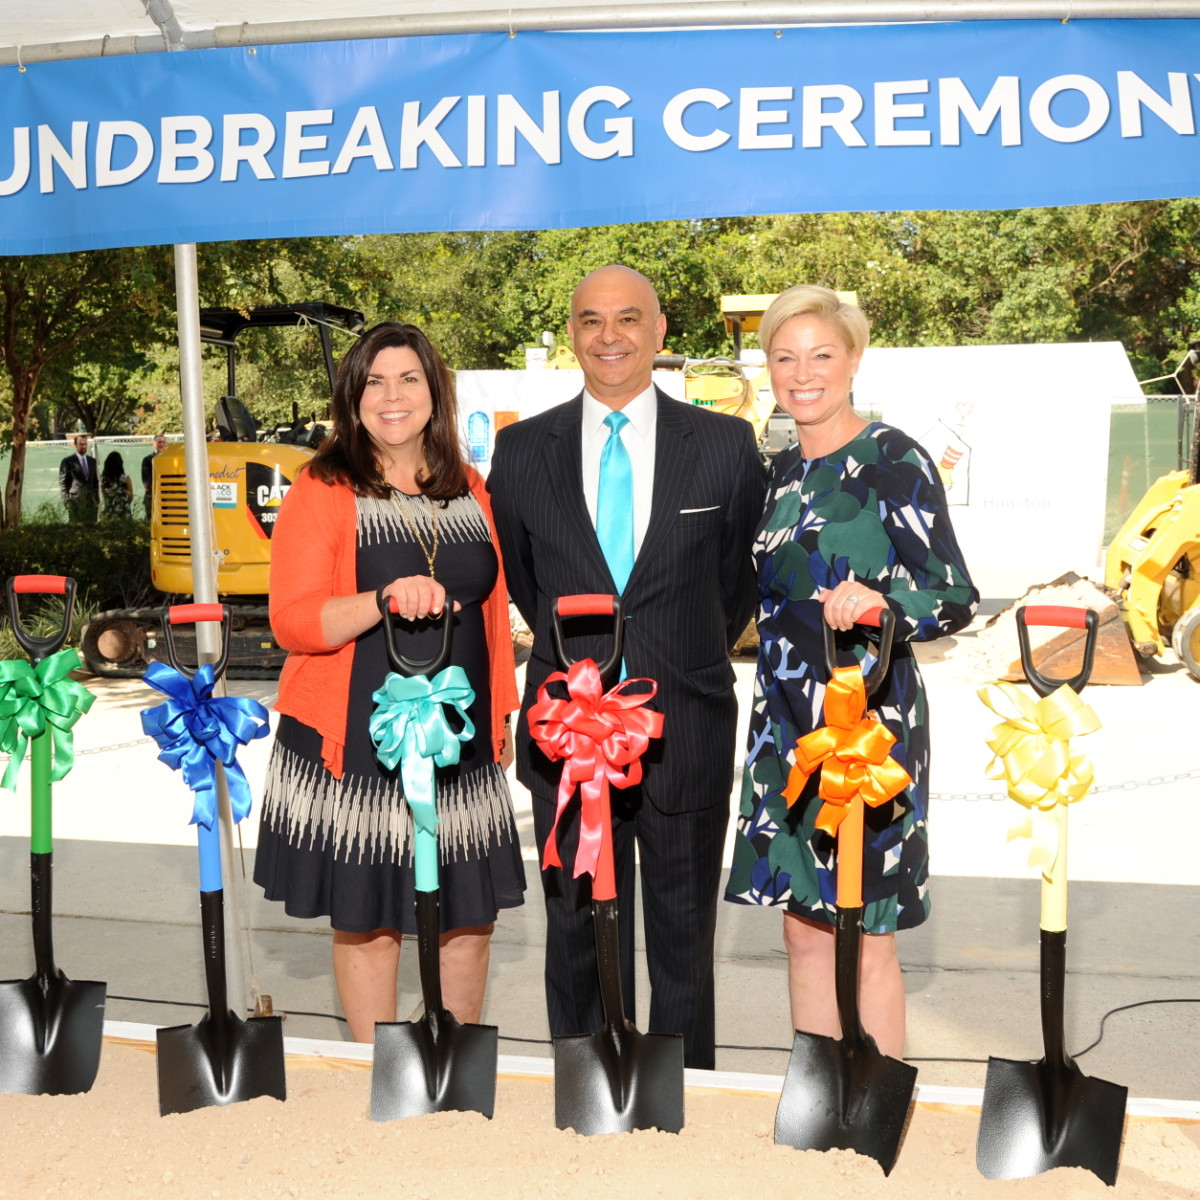 Houston, Ronald McDonald House groundbreaking, September 2017, Lesha Elsenbrook, Rick Noriega, Representative Sarah Davis